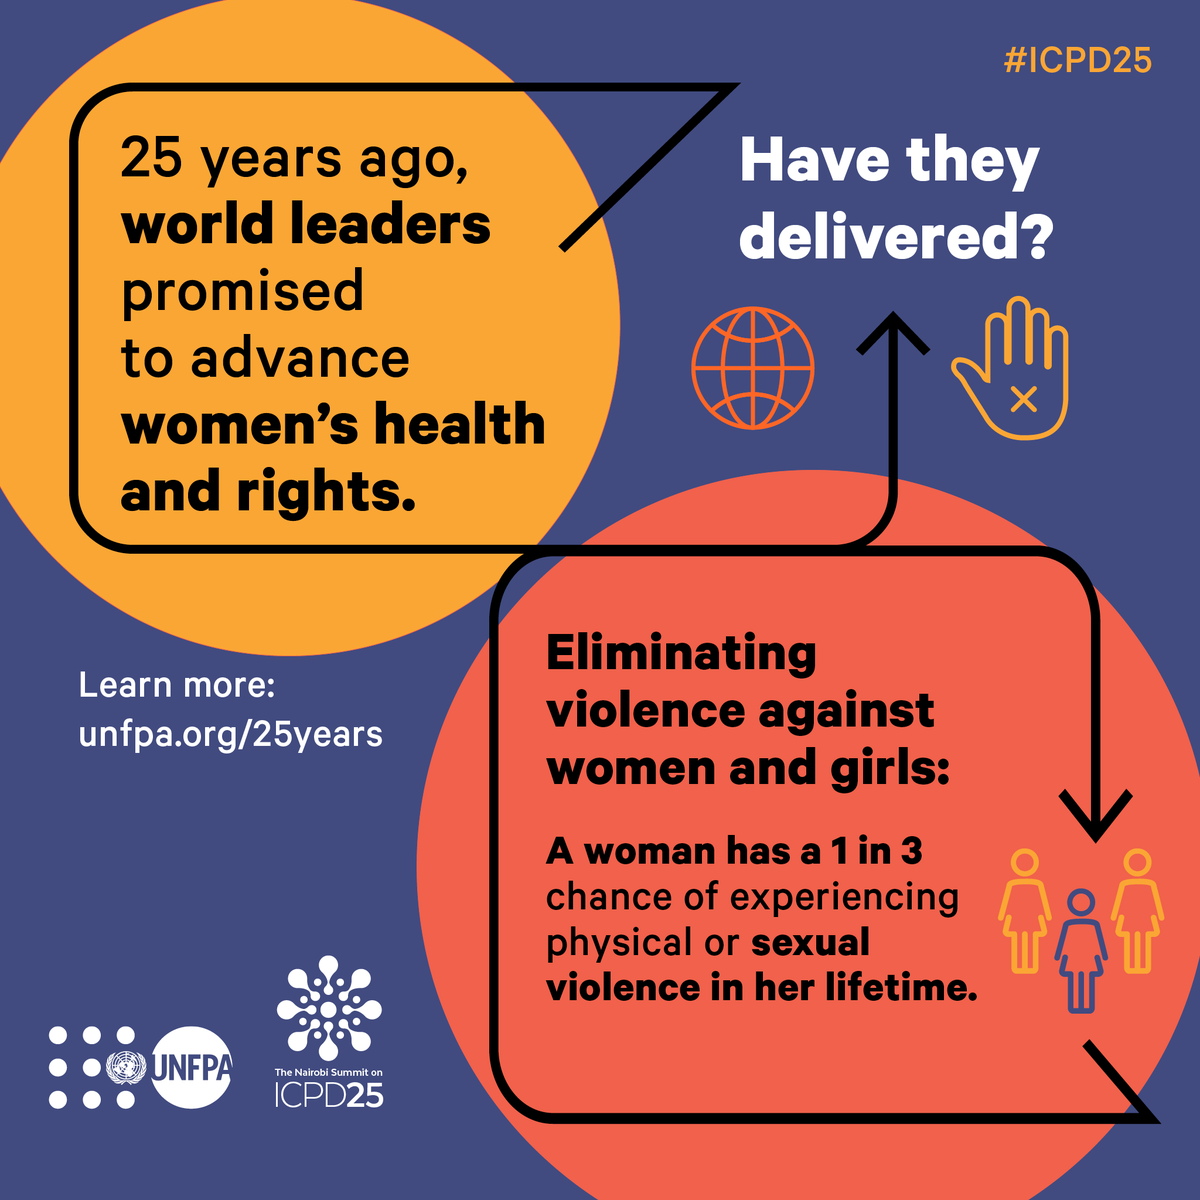 25 years ago, world leaders promised to advance women's rights. Yet today, a woman still has a 1-in-3 chance of experiencing violence in her lifetime. Thursday's #WorldPopulationDay provides an opportunity to recommit to #ENDviolence against women & girls. http://unfpa.org/25years